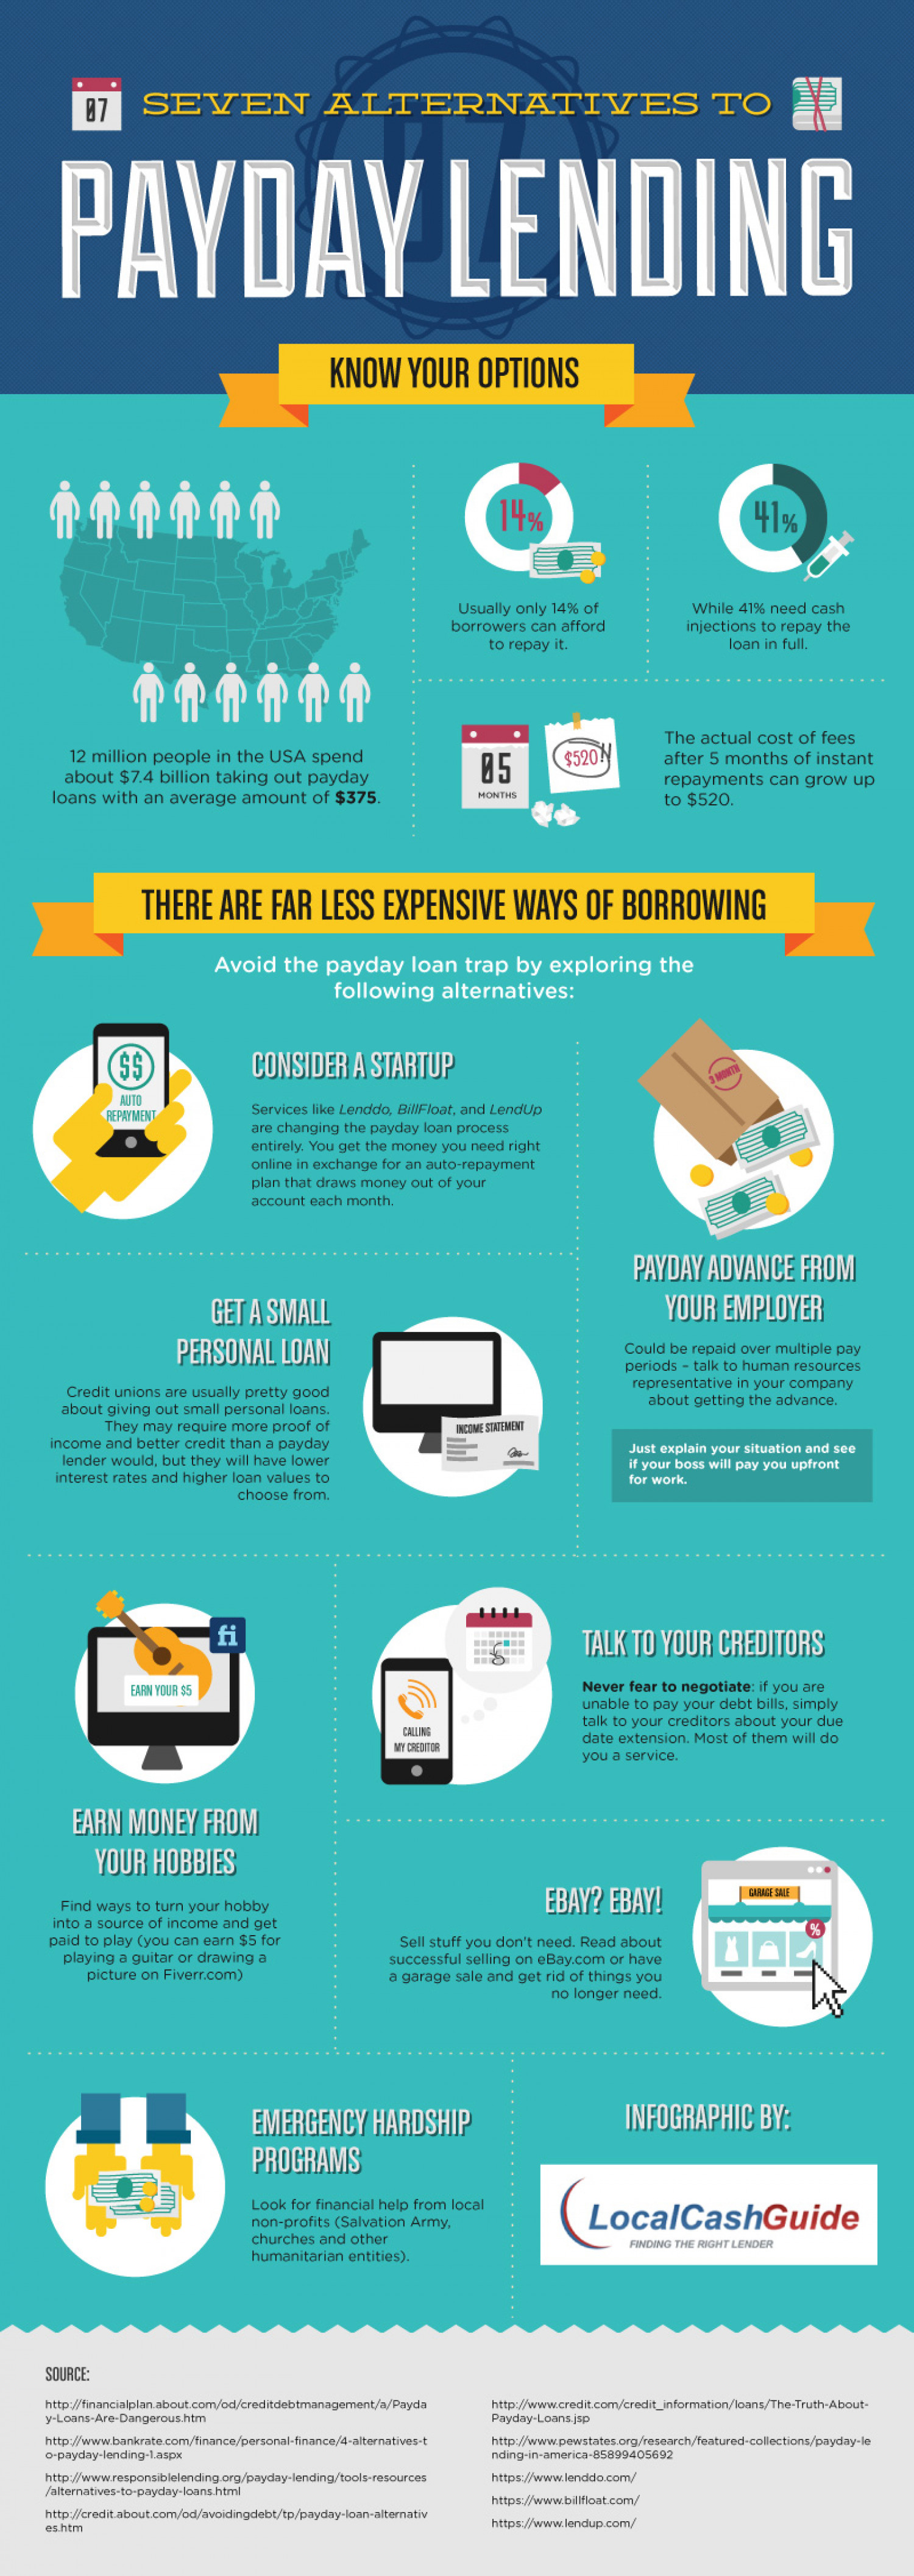 7 Alternatives to Payday Loans: Know Your Options Infographic